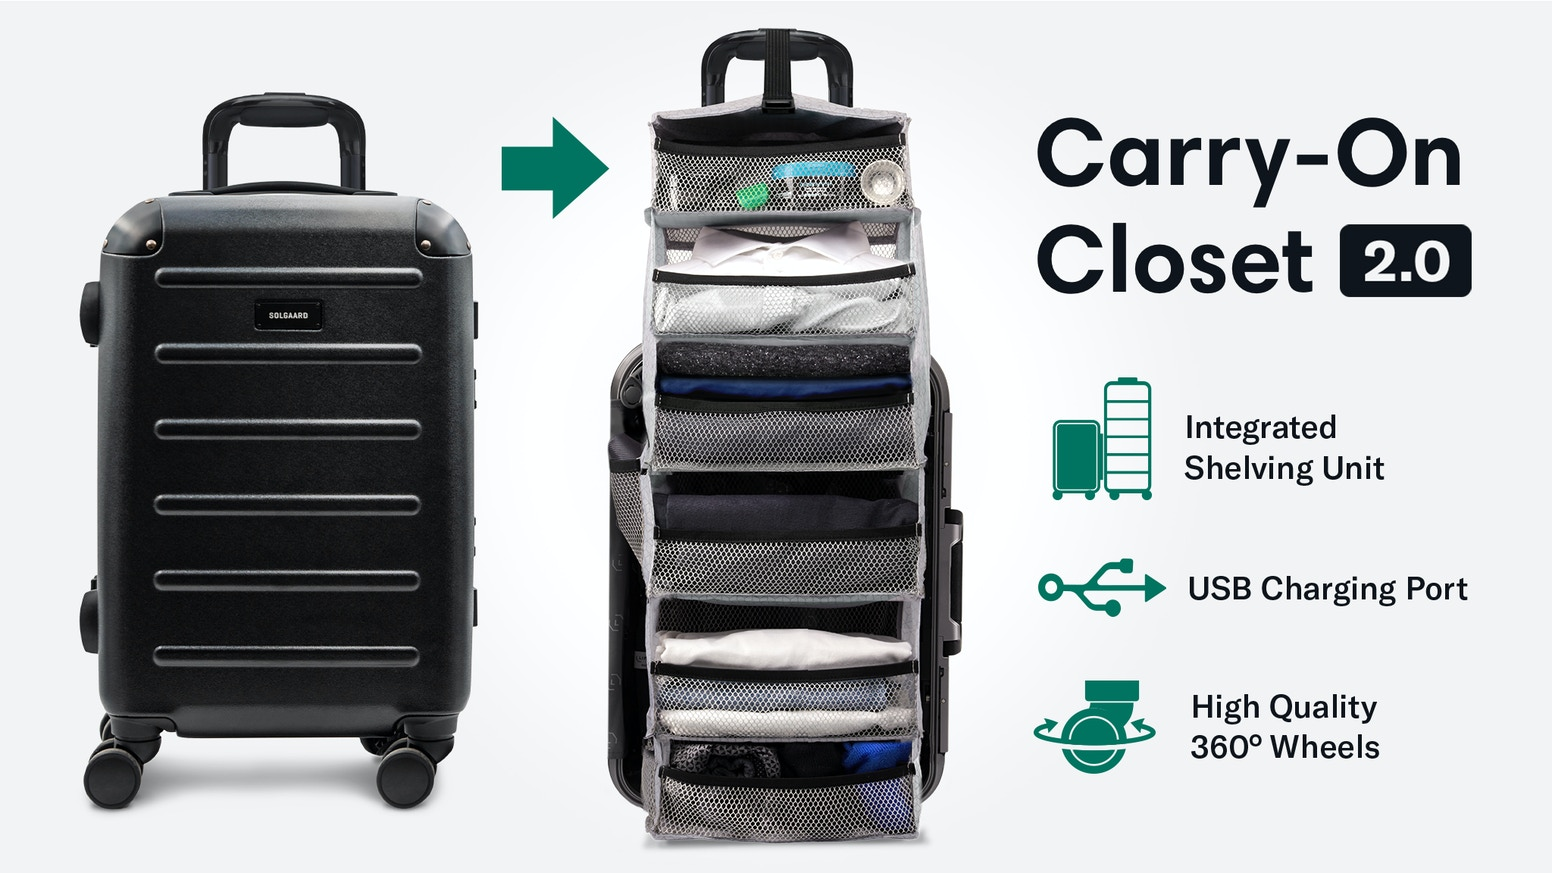 2c84158f1668 Carry-On Closet 2.0 - Solgaard Suitcase with Shelf and USB by ...